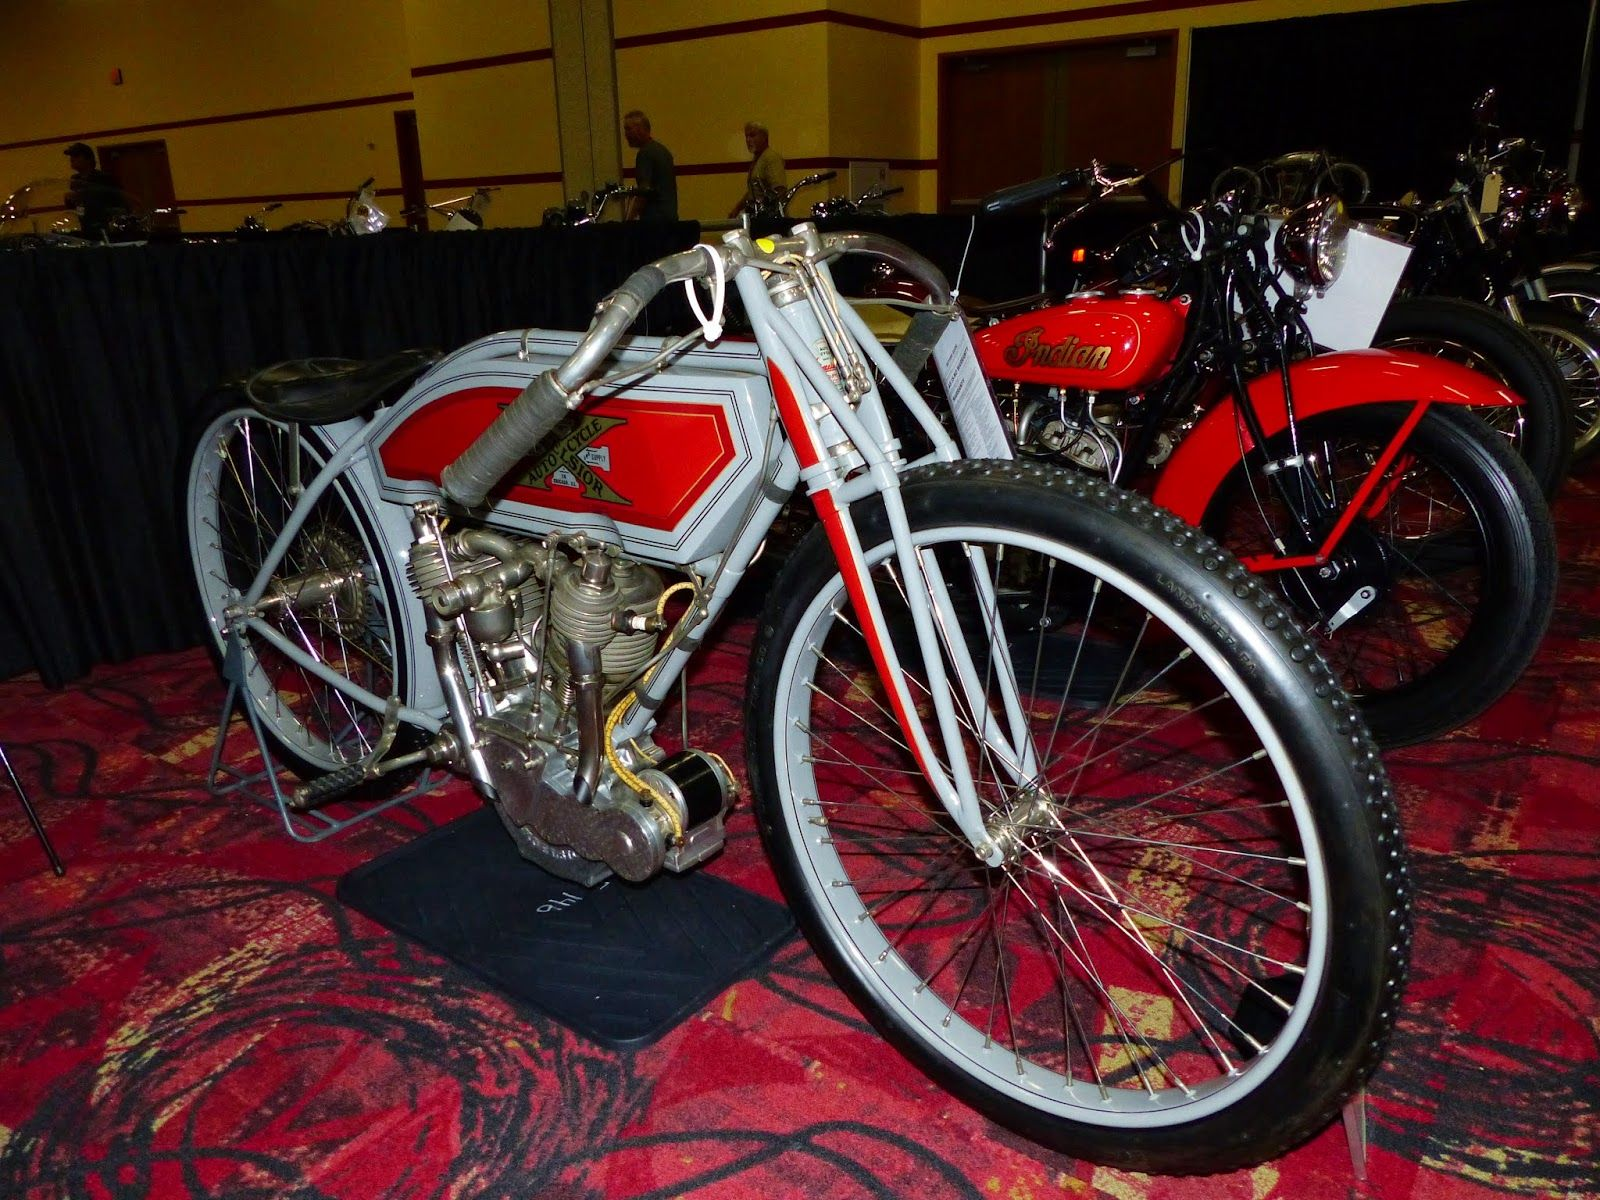 1913 Excelsior Board Track Racer For Sale At The 2015 Mecum Las Vegas Motorcycle Auction Henderson Motorcycle Racer Motorcycle